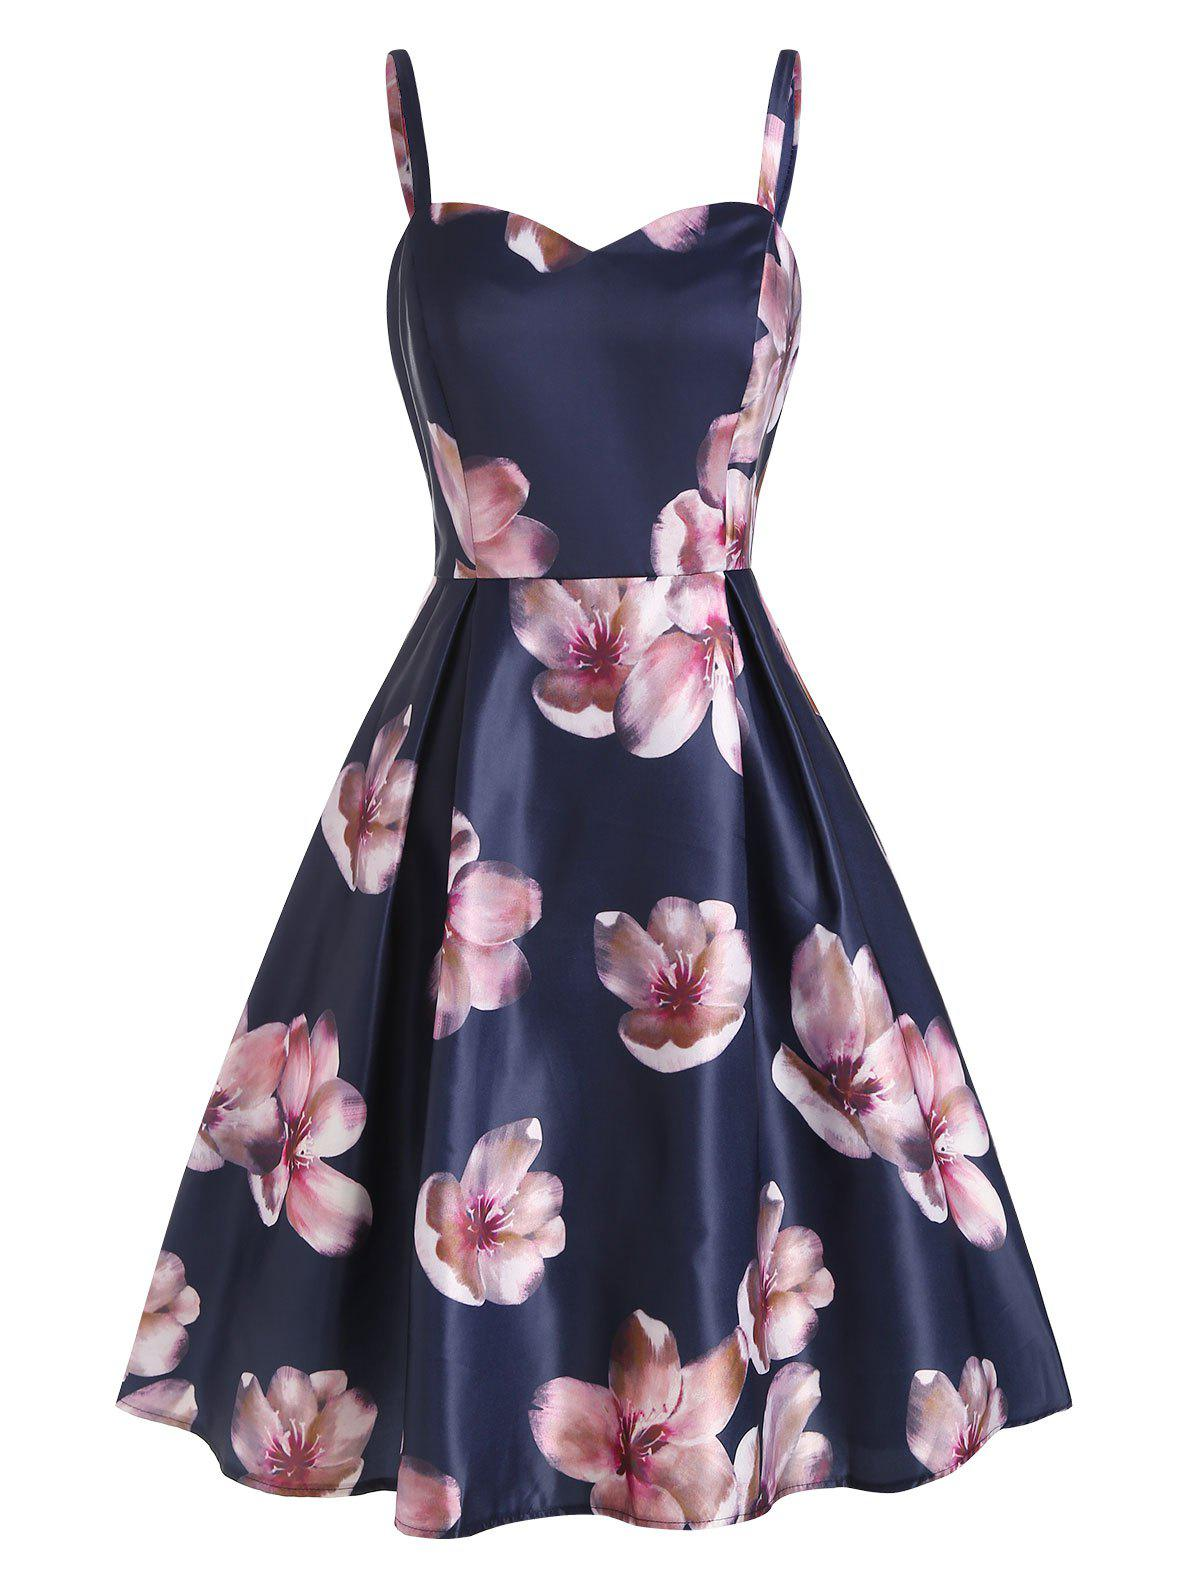 Hot Open Back Sleeveless Floral Print Dress